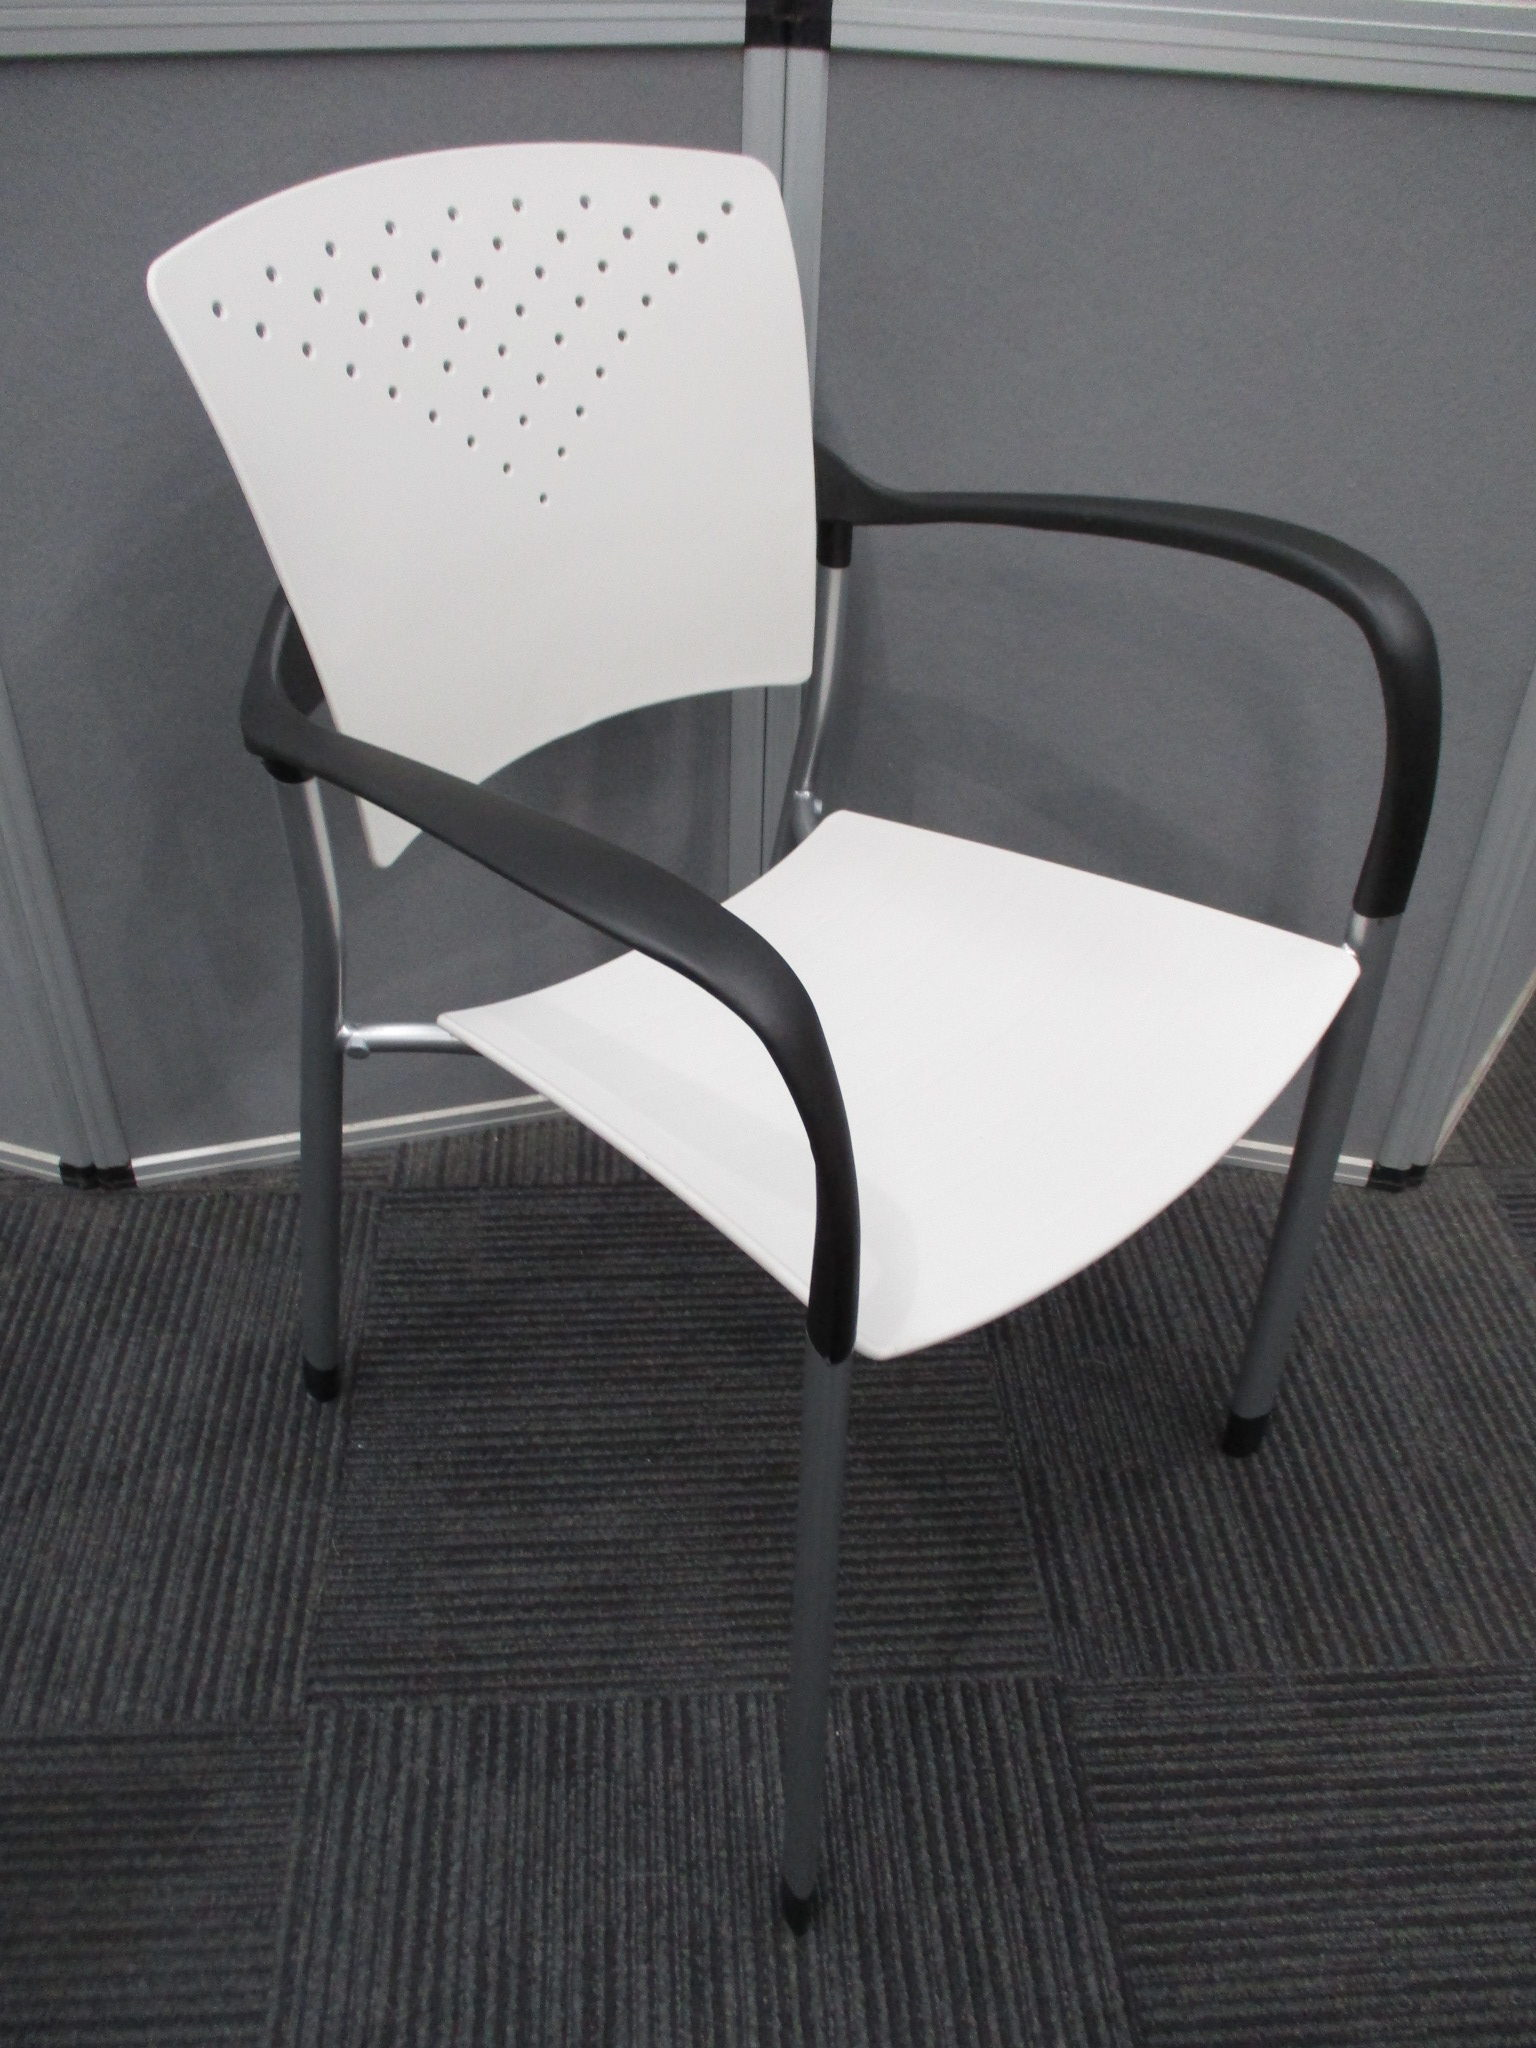 New White and Silver Sienna Stacking Chairs $69